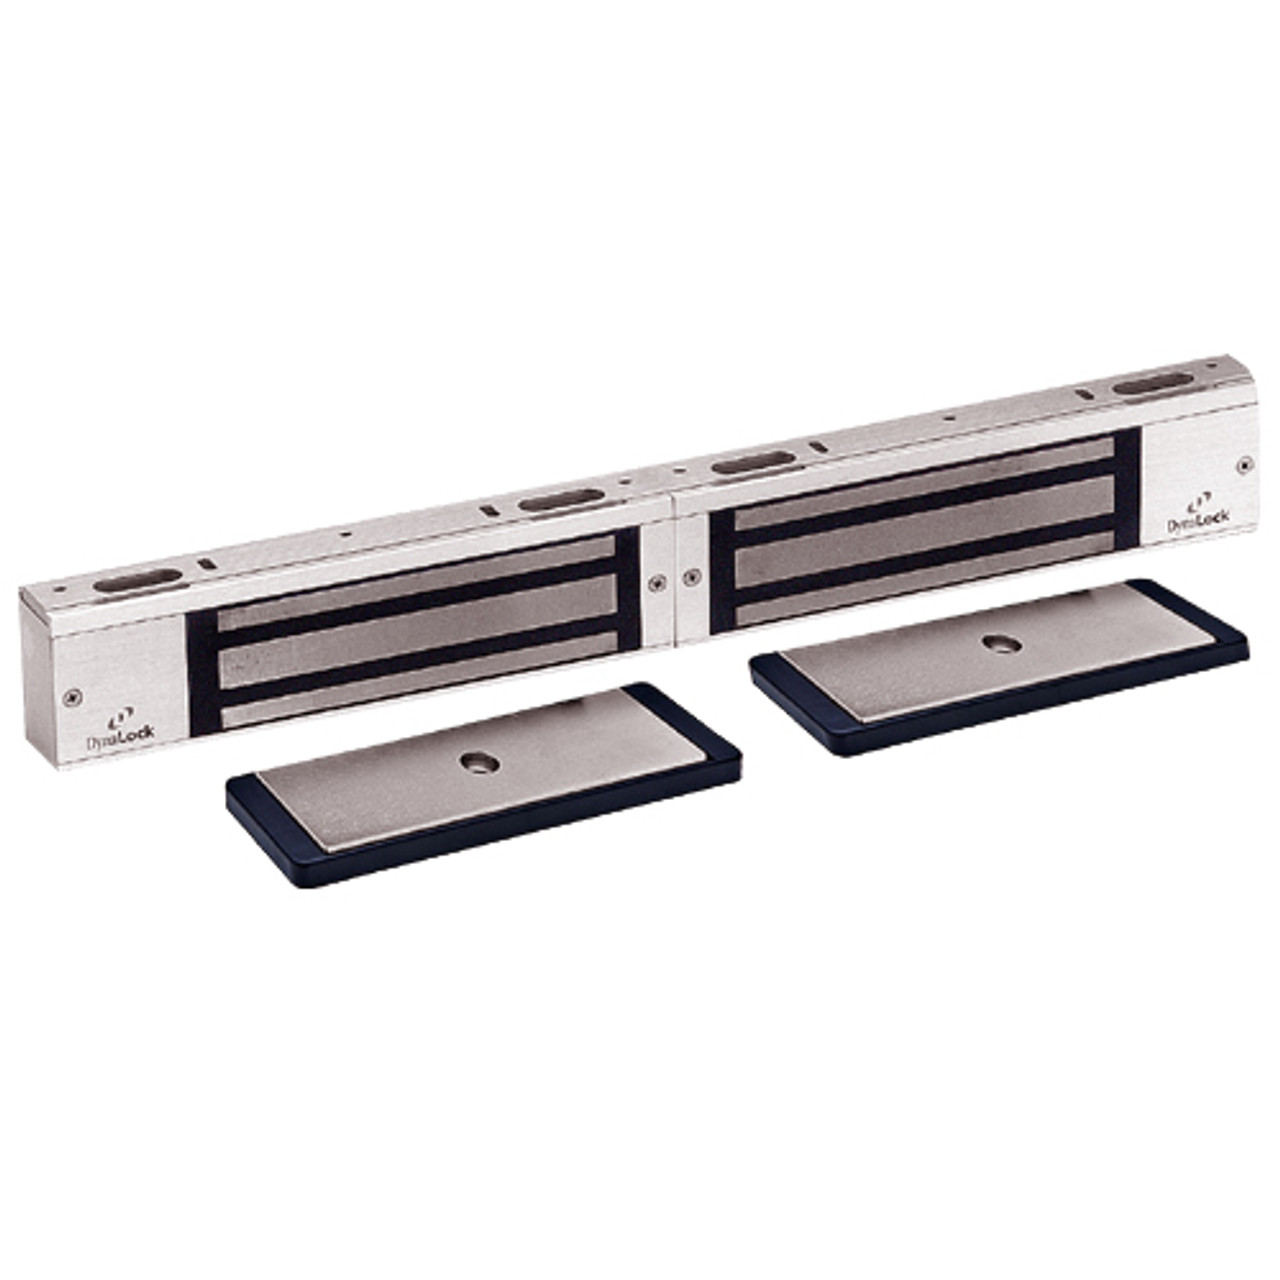 3002TJ32-US28-HSM2 DynaLock 3000 Series 1500 LBs Double Electromagnetic Lock for Inswing Door with HSM in Satin Aluminum